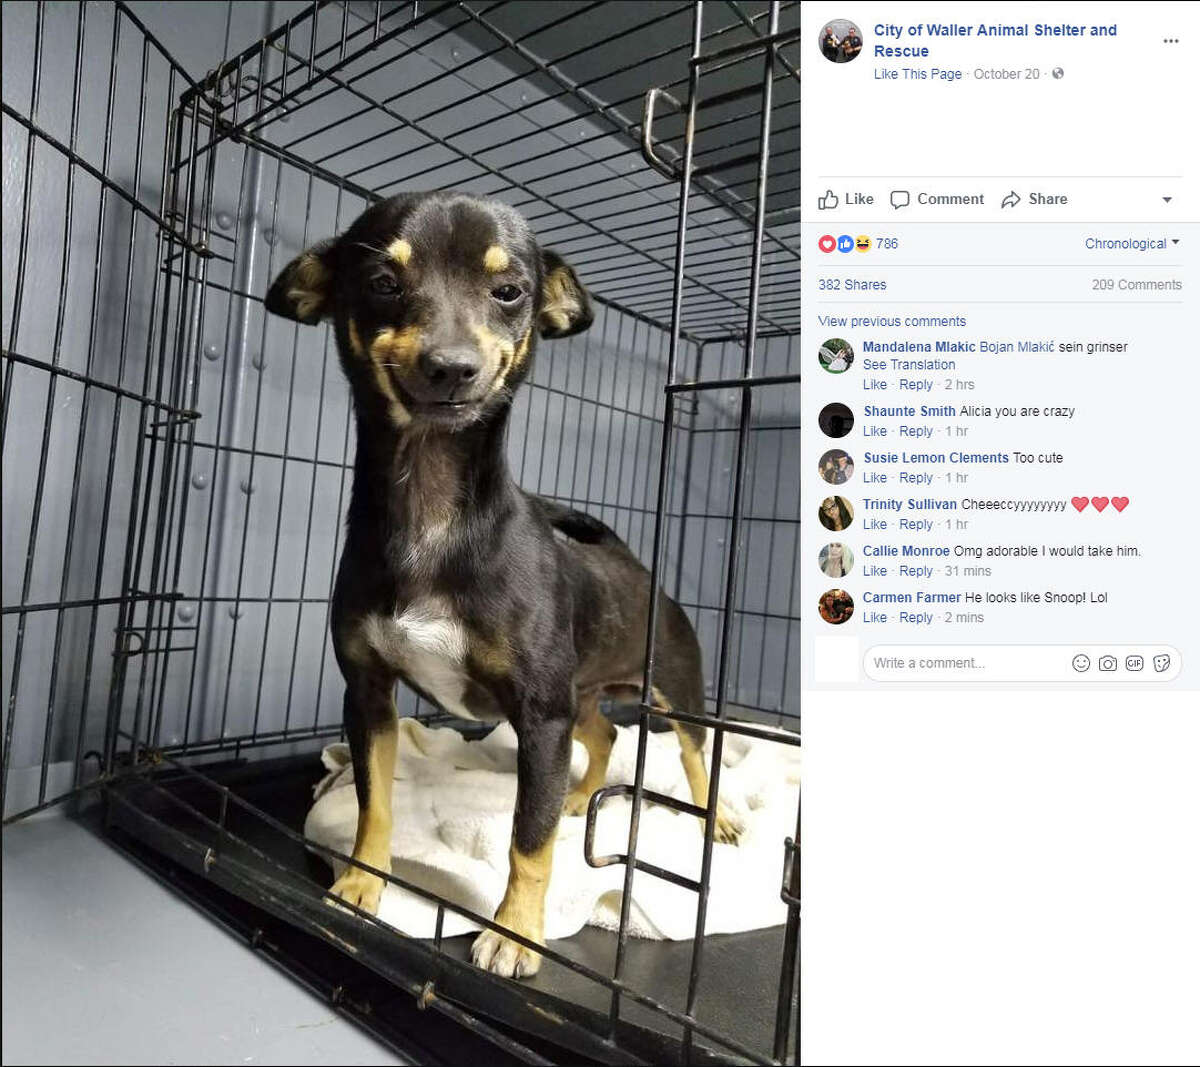 Cheech, a smiling shelter dog, went viral after the City of Waller Animal Shelter shared pictures of him on Facebook. Cheech was adopted less than a week after his photos were shared online.Image source: FacebookSee how dogs may be trying to communicate with you up ahead.